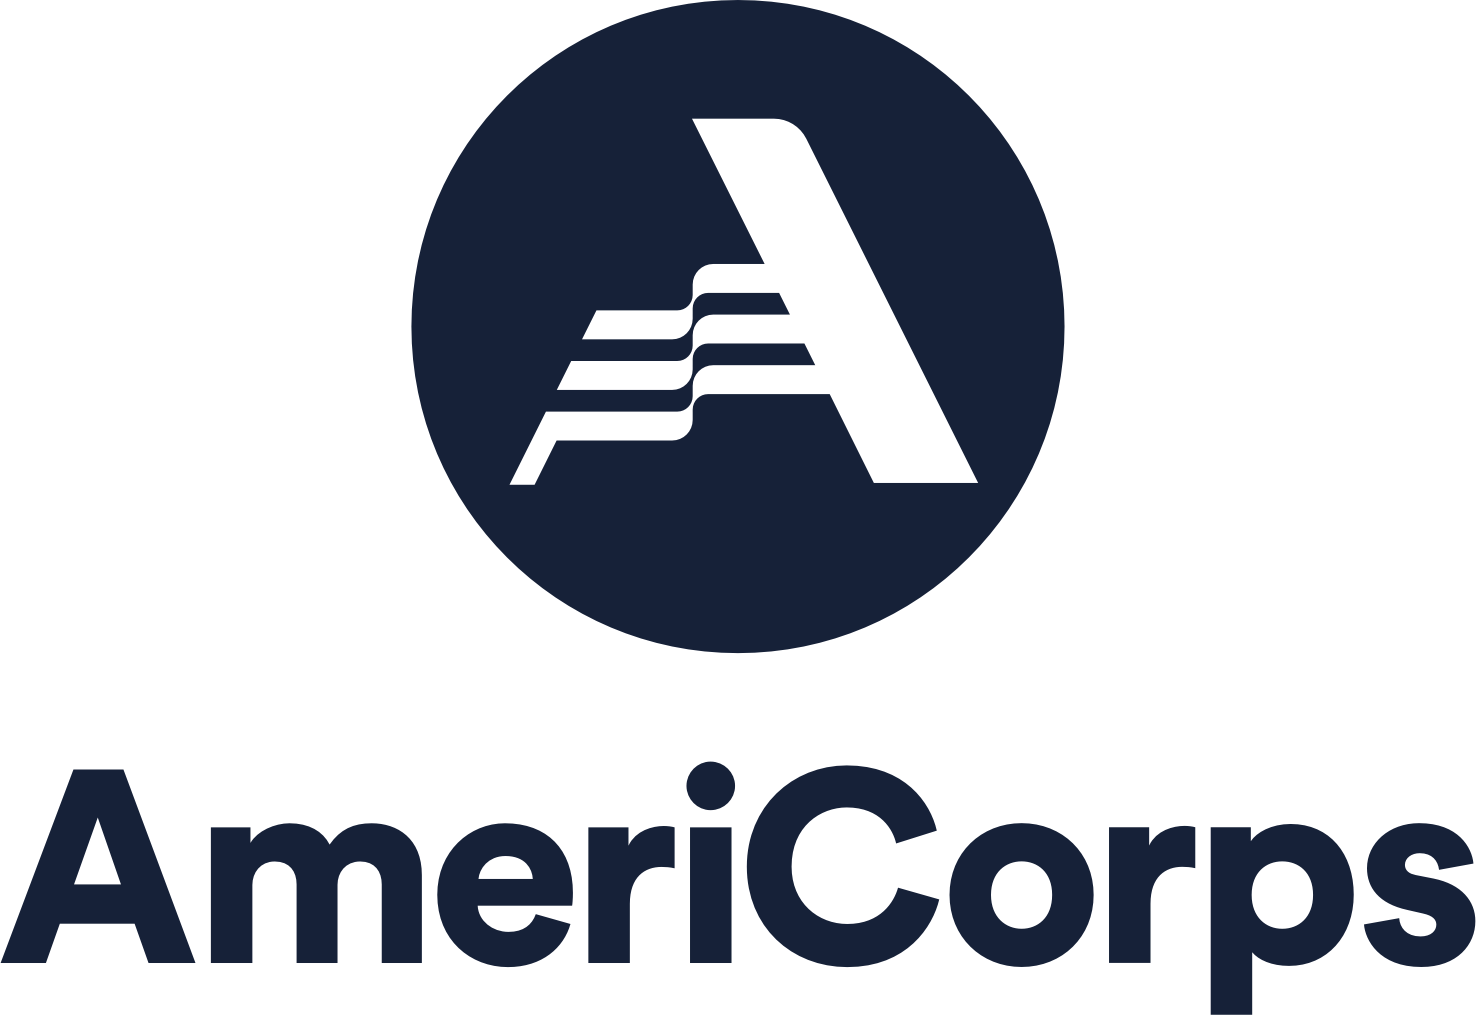 Americorps new logo_Stacked_Navy